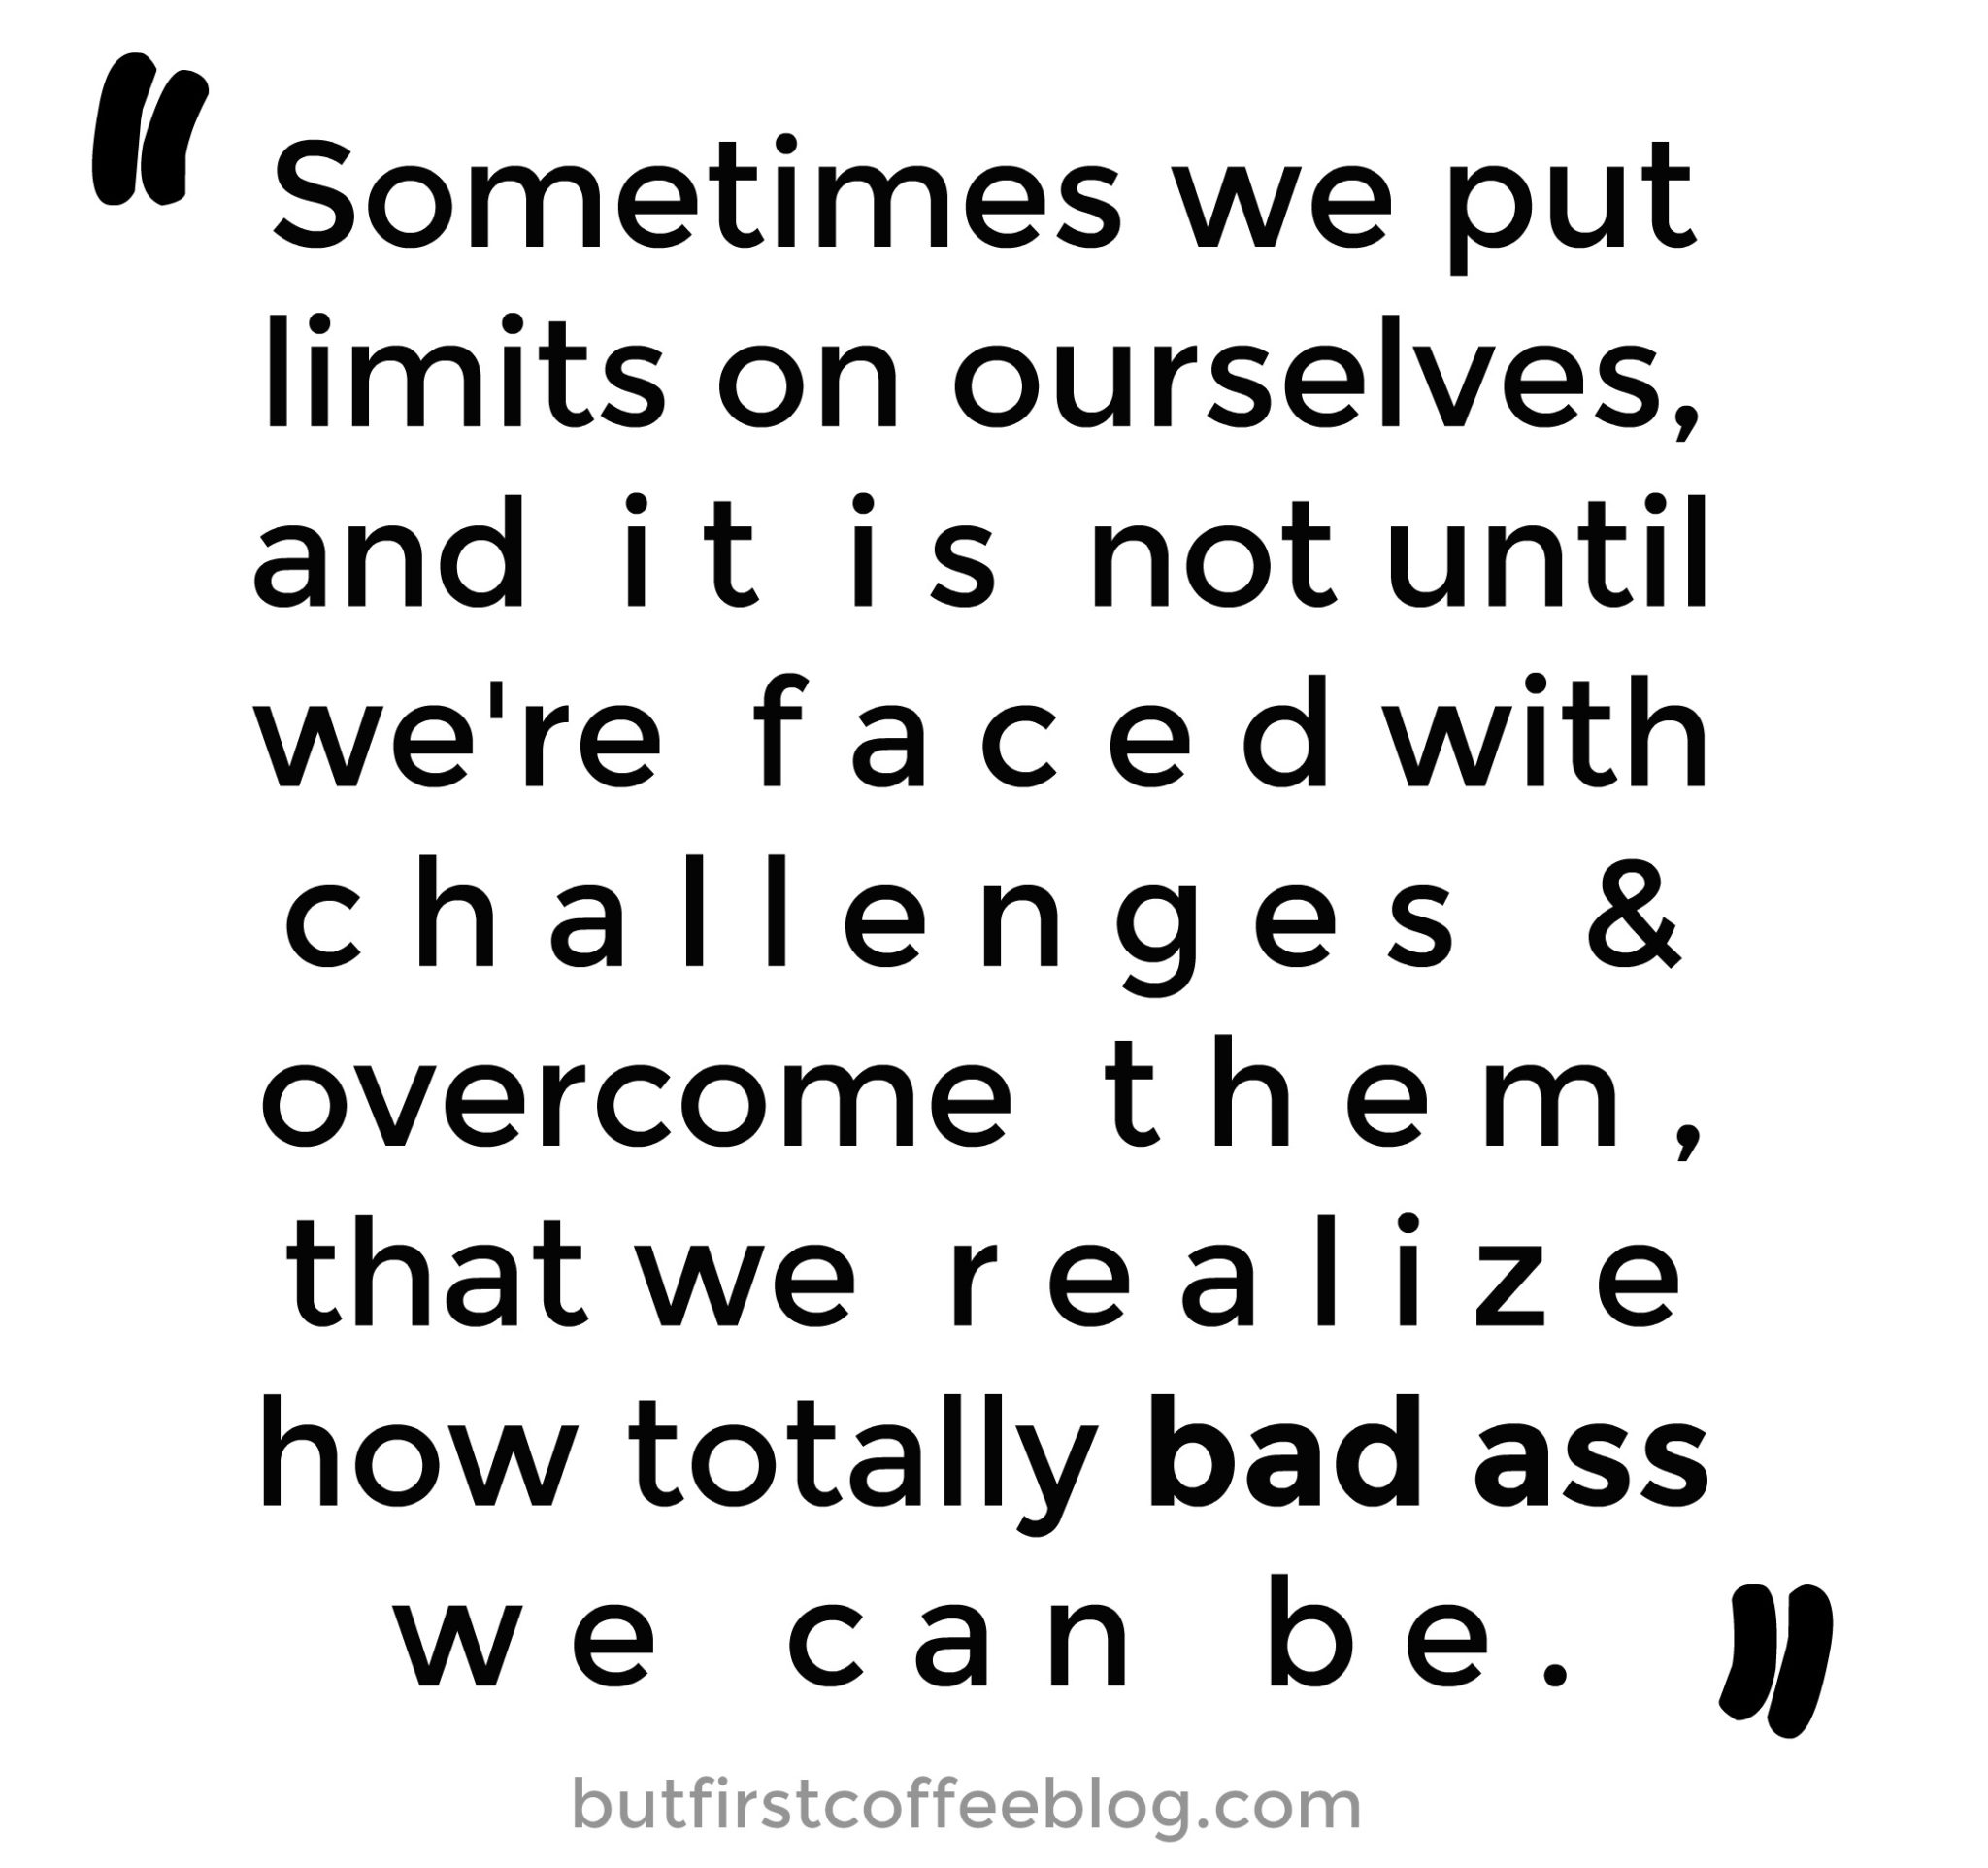 Sometimes we put limits on ourselves and it is not until we're faced with challenges and overcome them that we realize how totally bad ass we can be